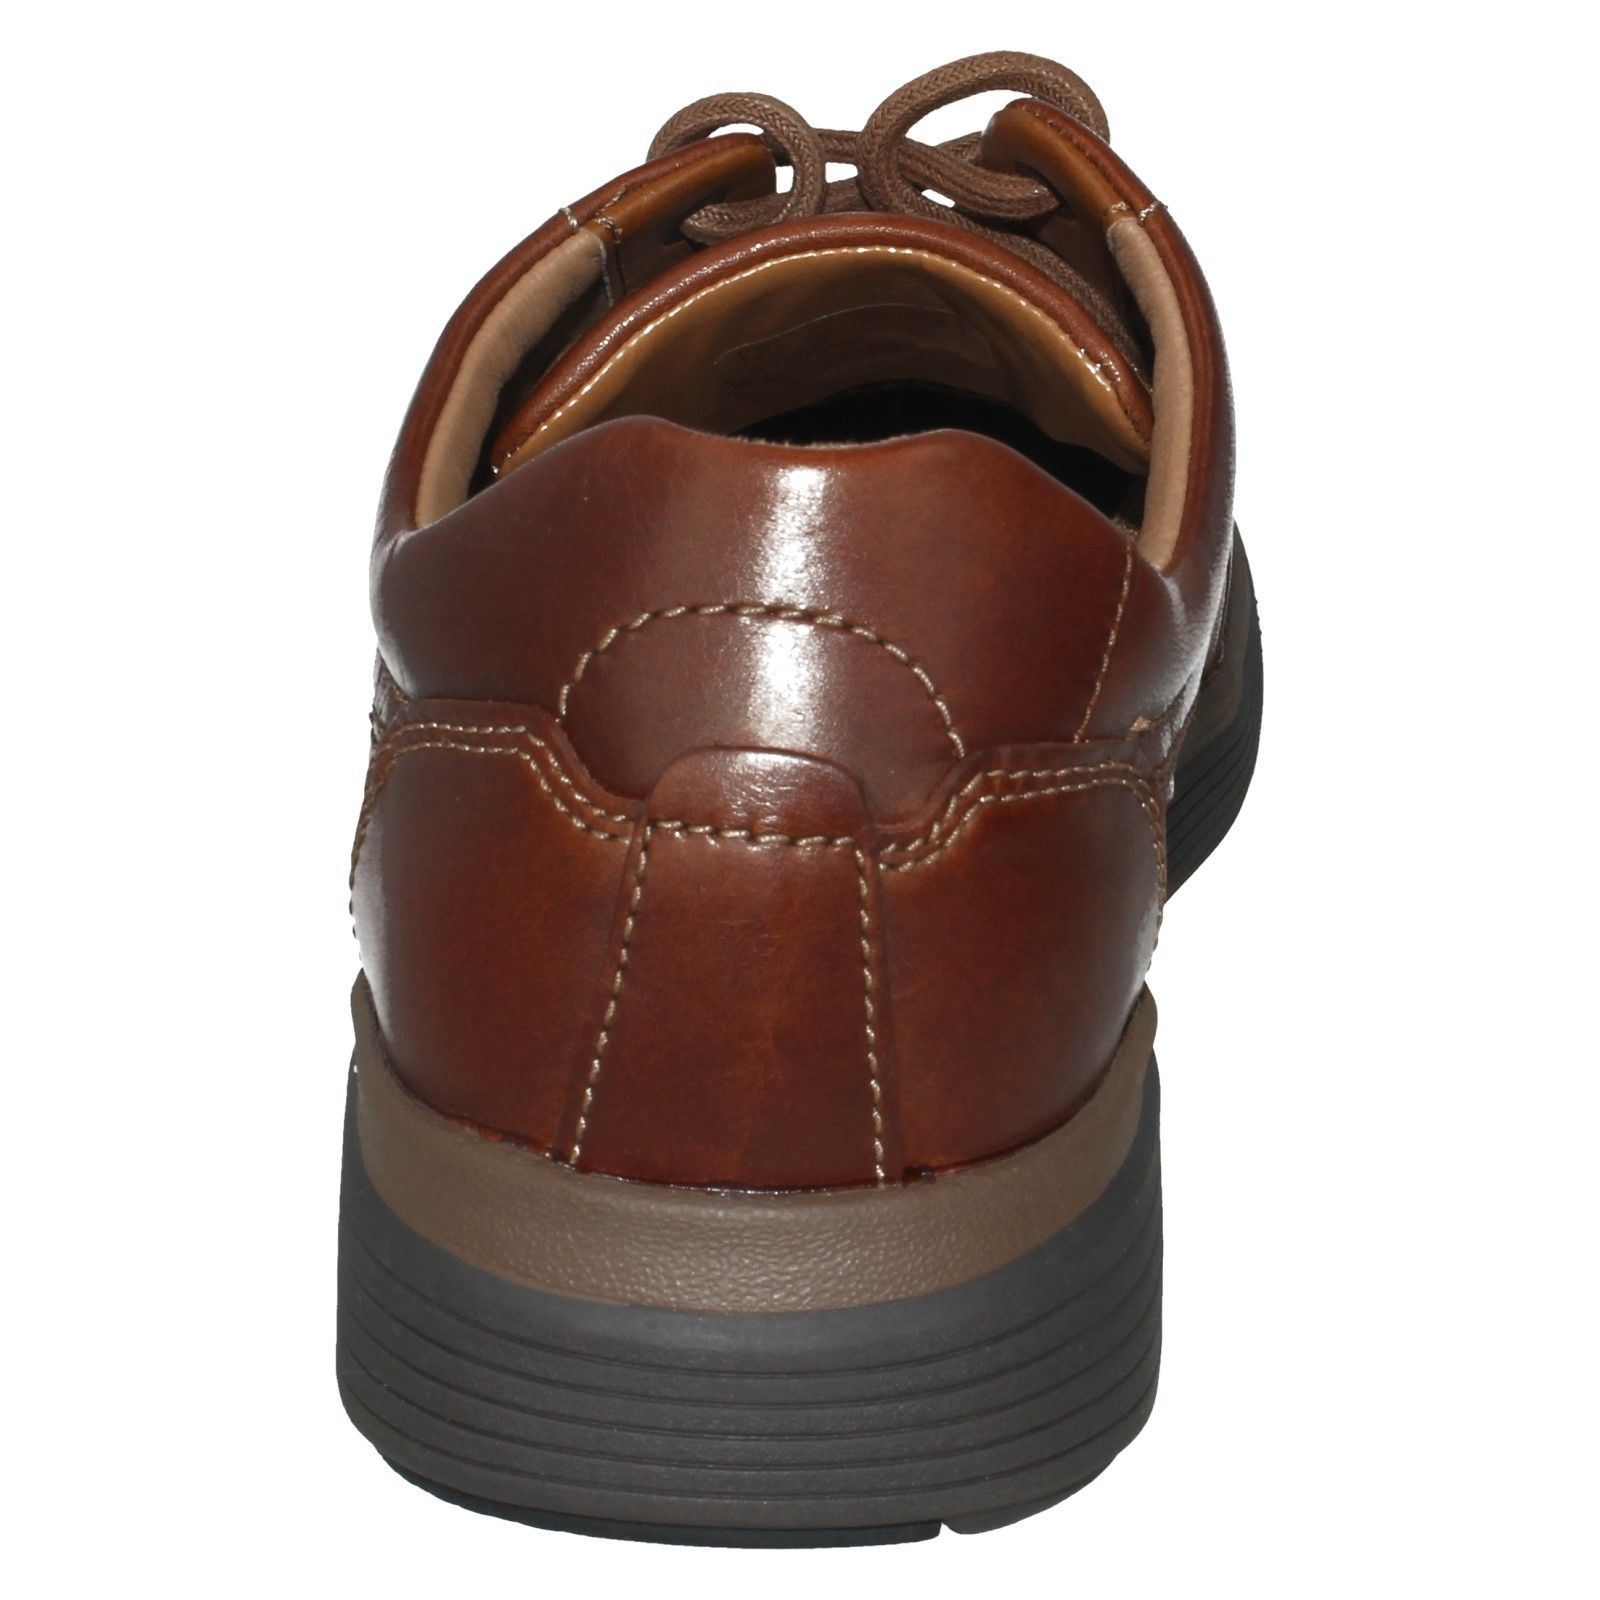 Hombre Unstructured by Clarks Leather Casual Zapatos The Style - - - Un Abode Ease 25fdd1